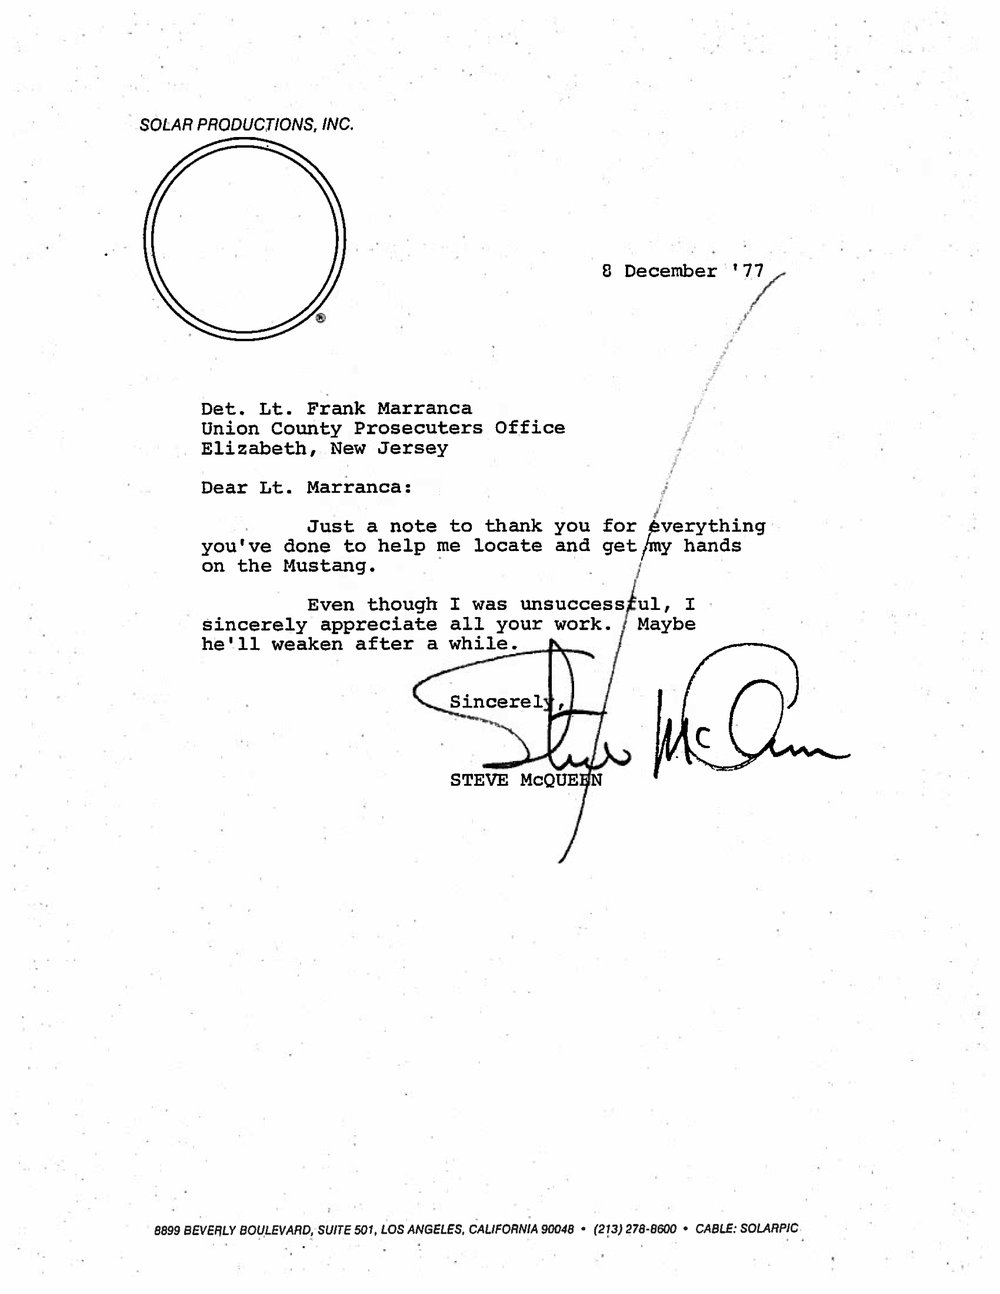 Steve McQueen contacted Frank Marranca three years after Marranca sold #559. Property of Frank Marranca